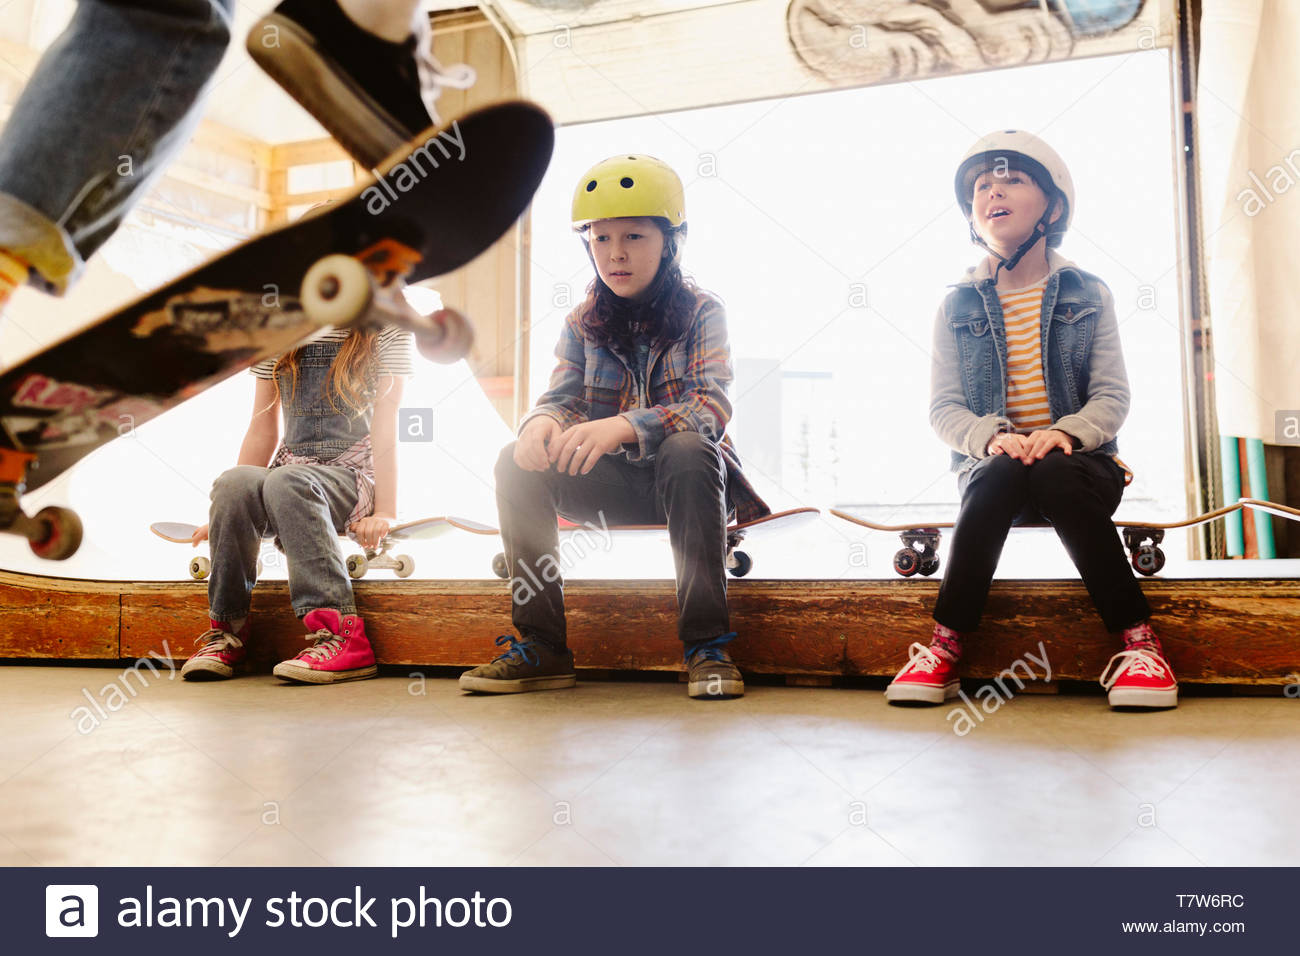 Kids watching at indoor skate park - Stock Image